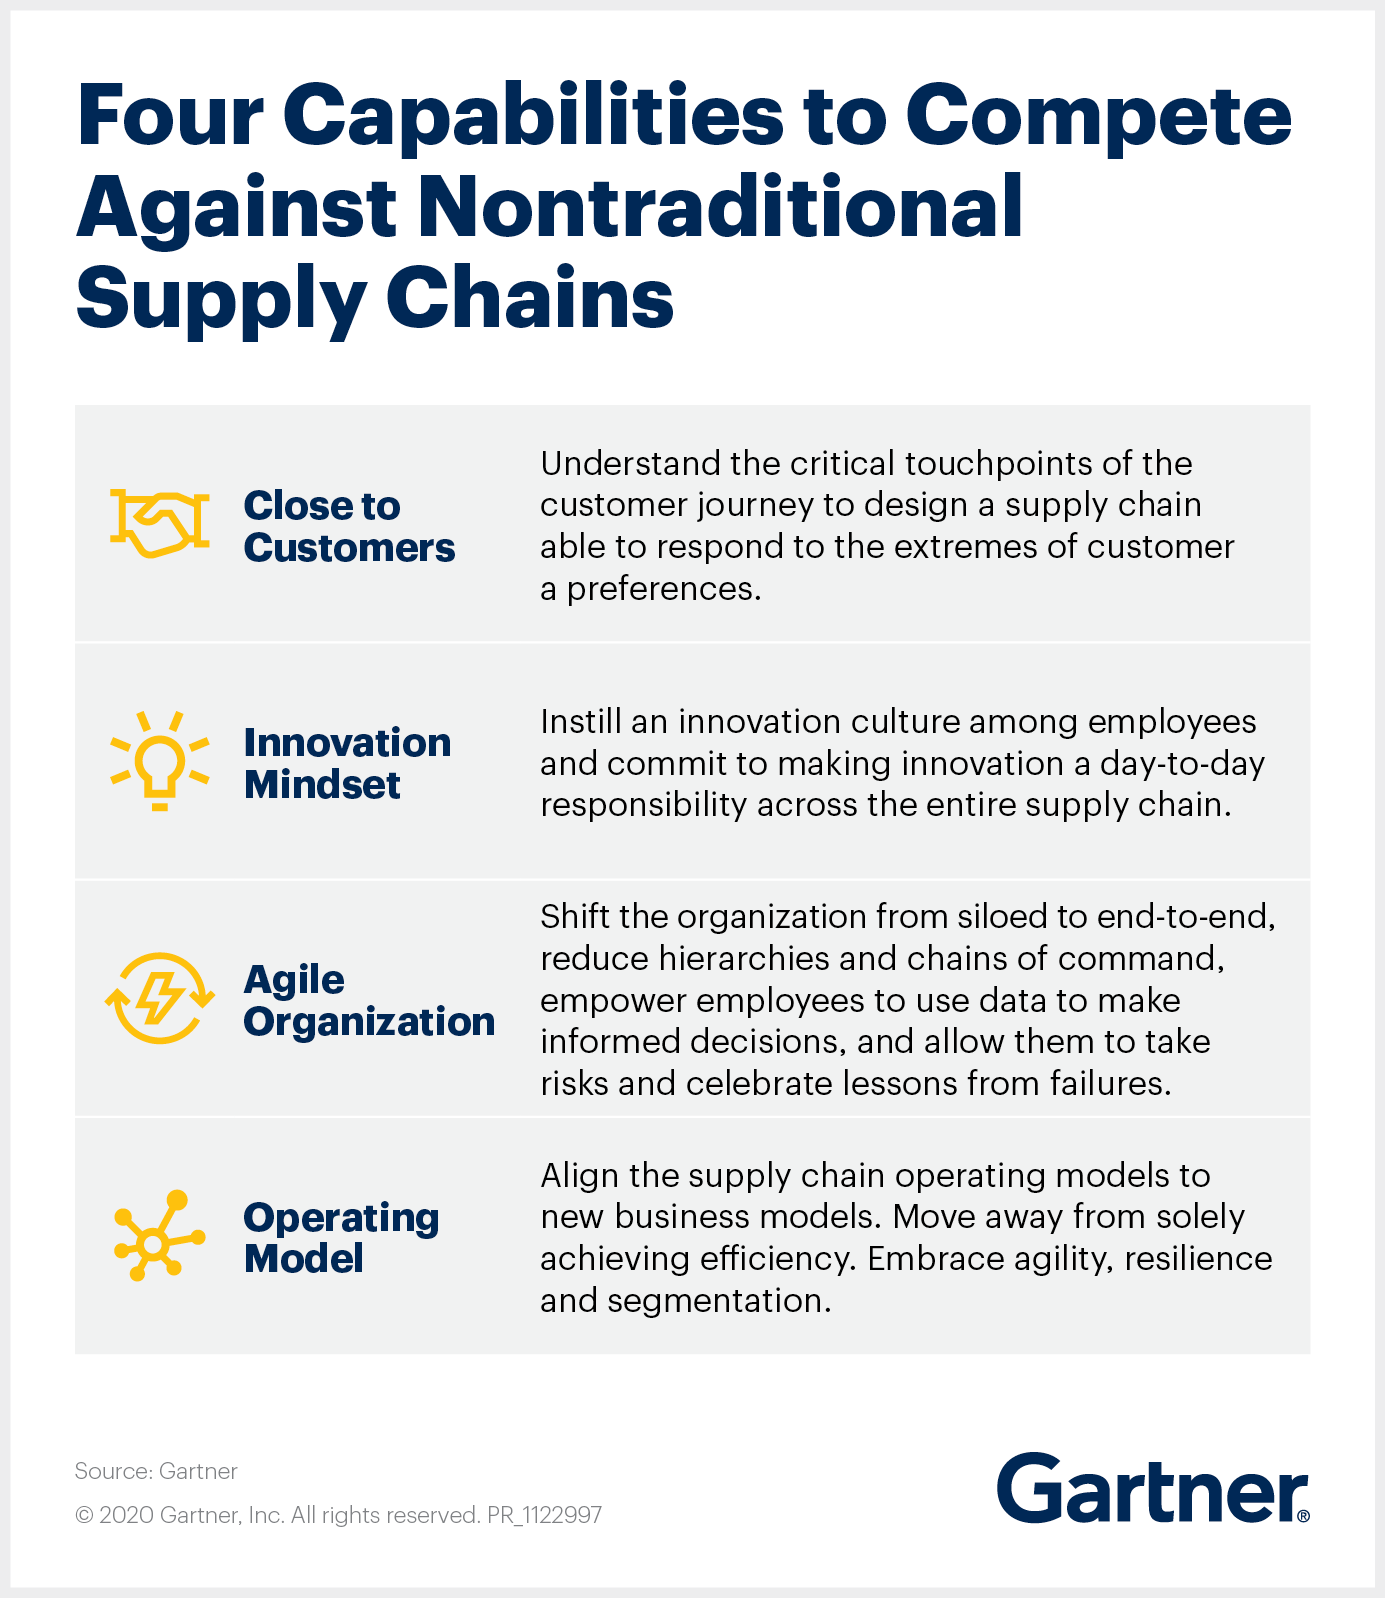 Four Capabilities to Compete Against Nontraditional Supply Chains: Close to Customers, Innovation Mindset, Agile Organization, Operating Model